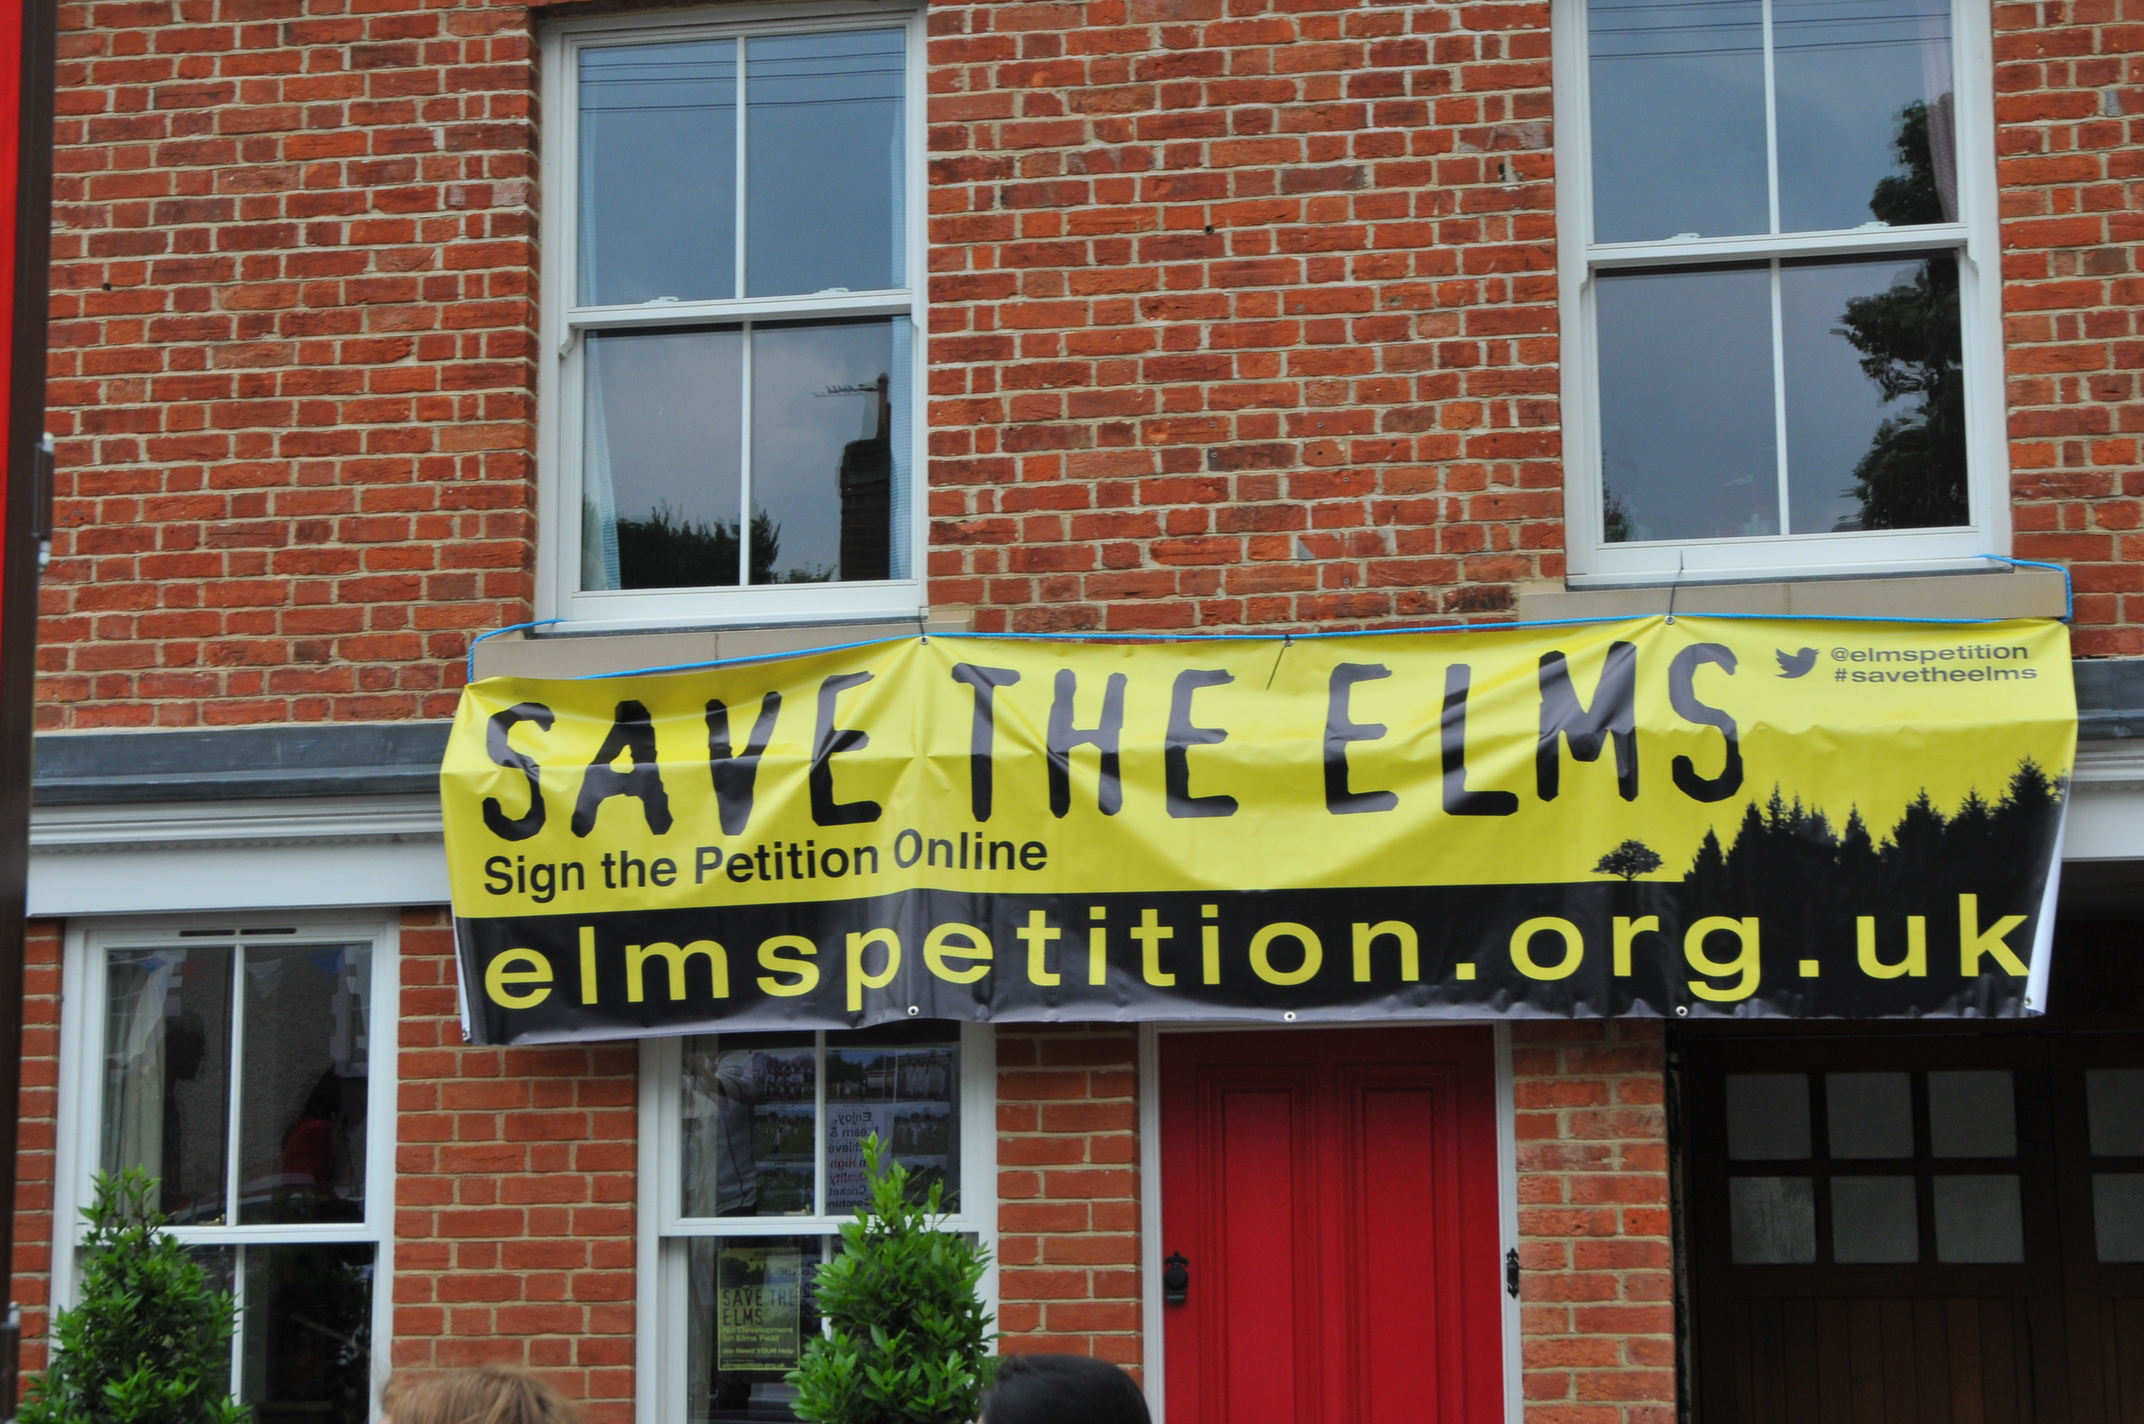 Elms Petition Banner on House